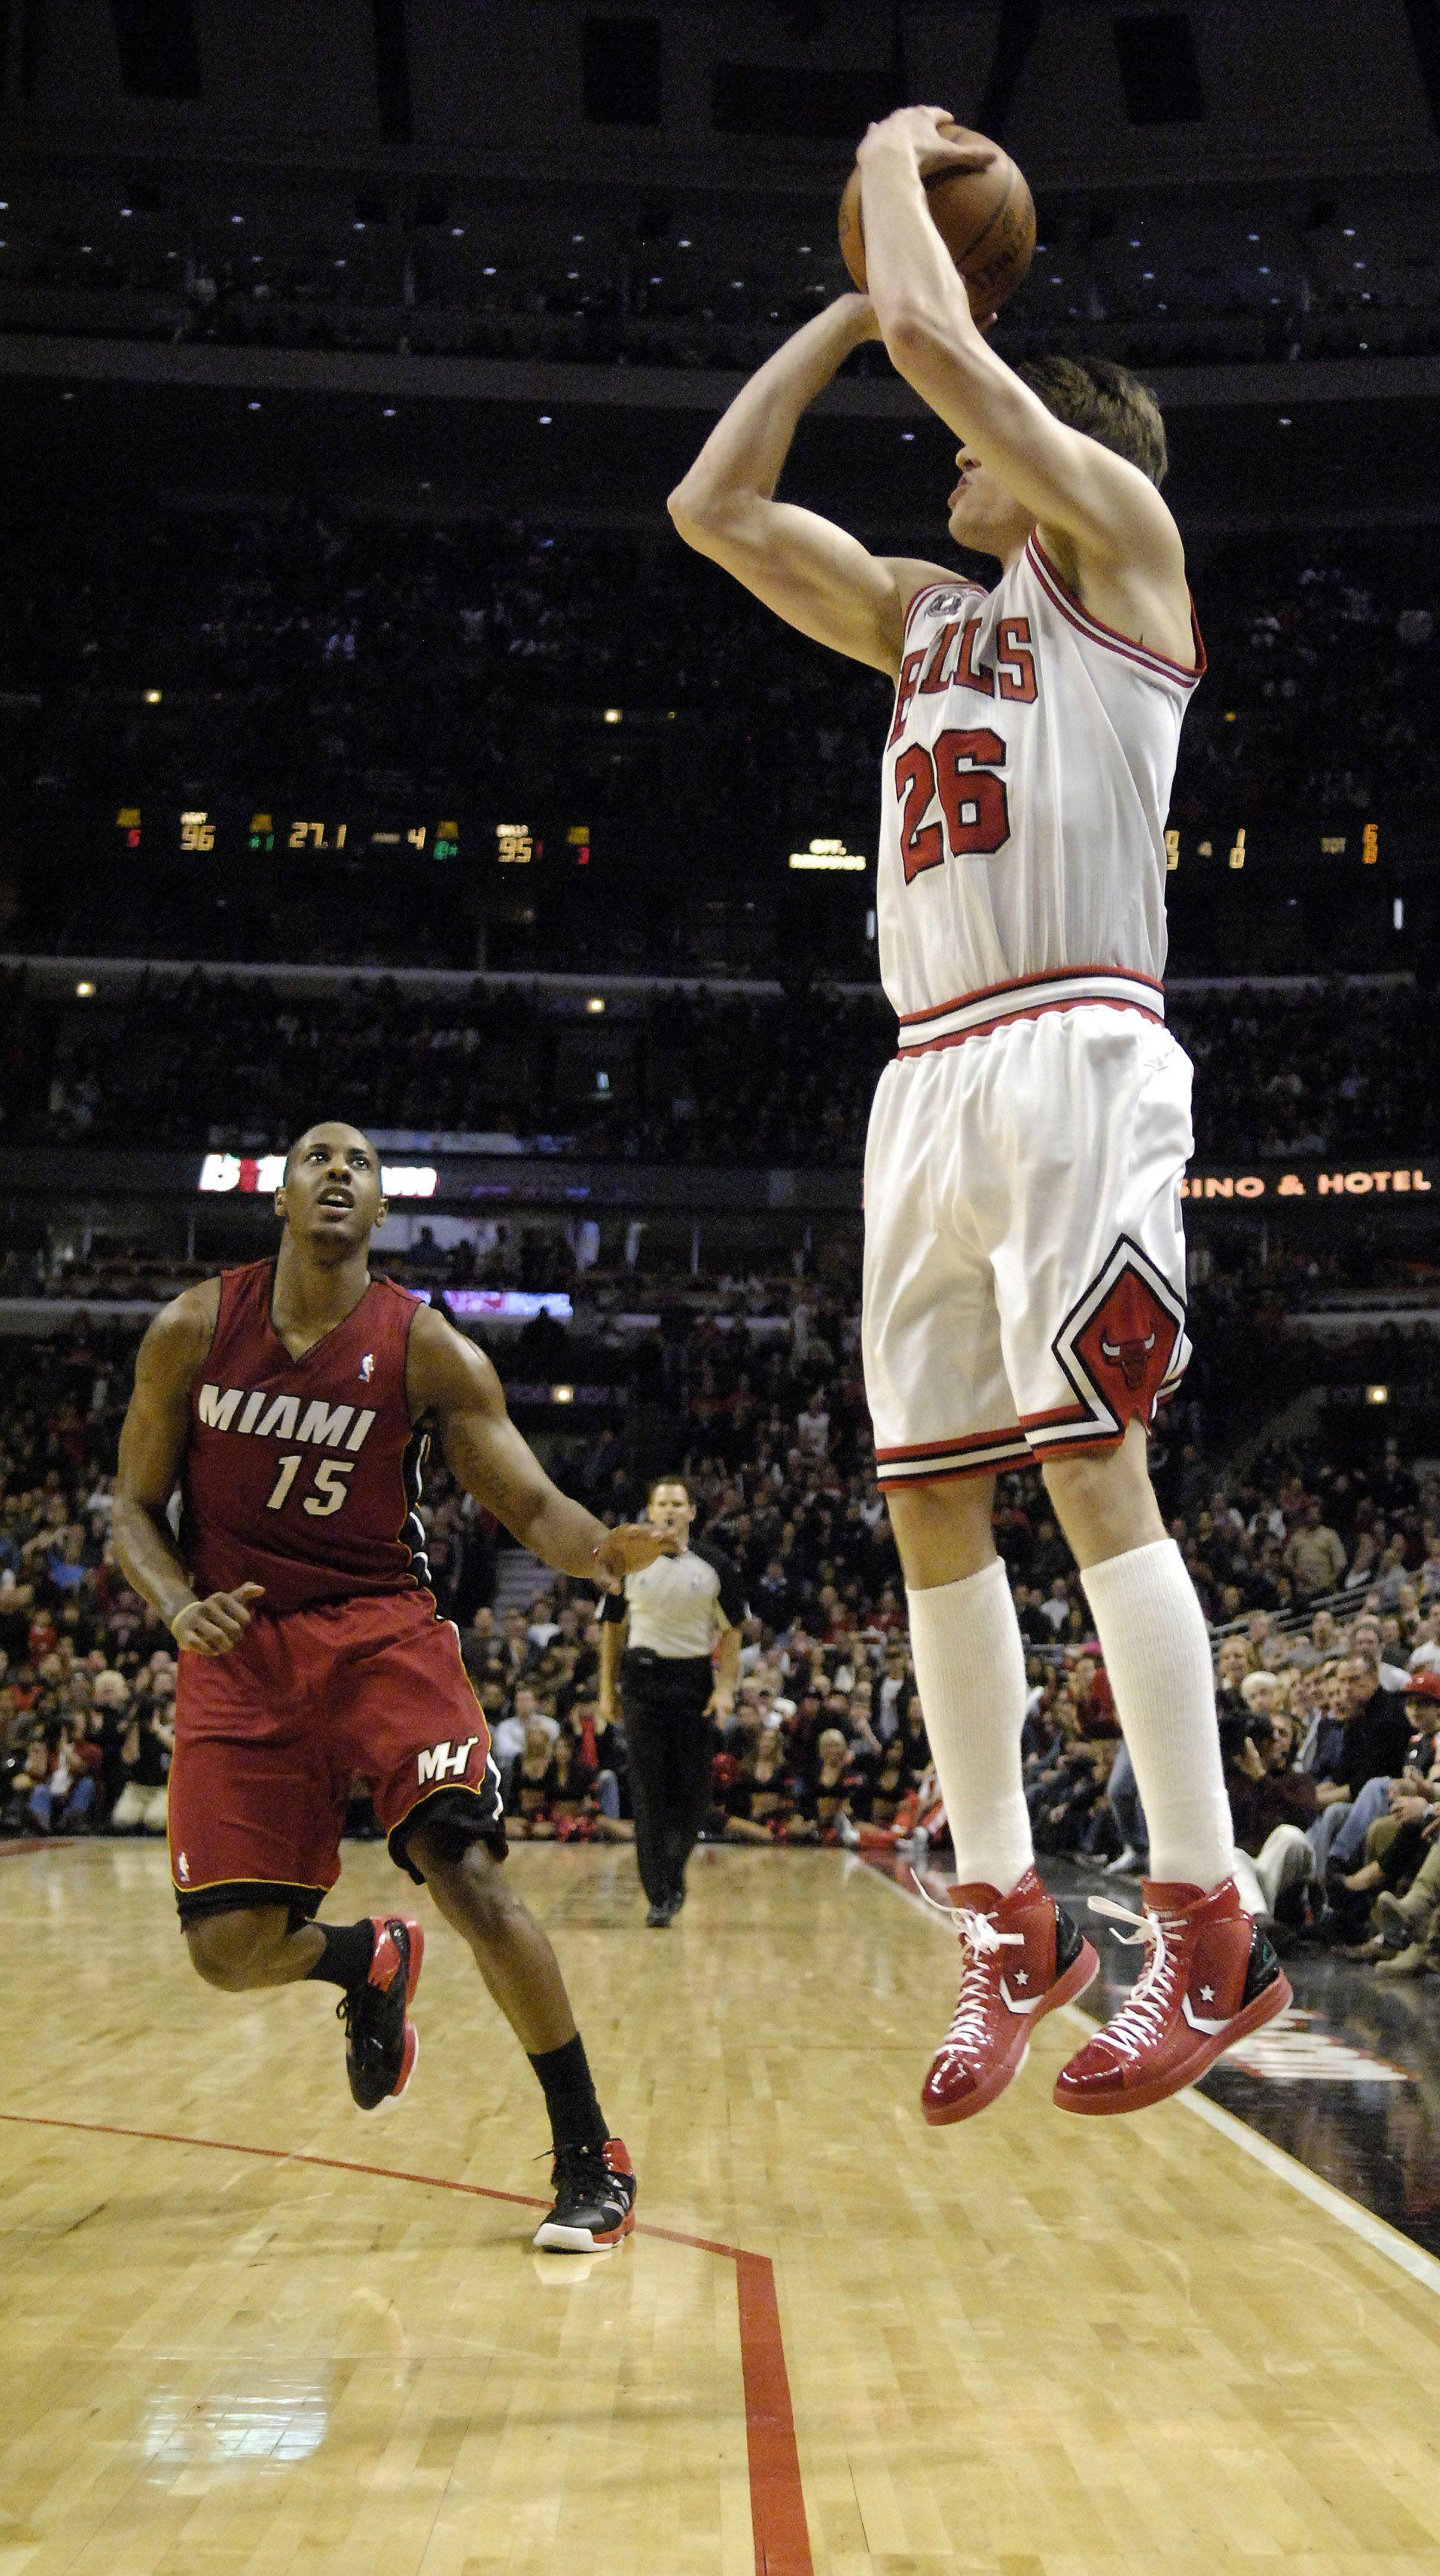 Chicago Bulls shooting guard Kyle Korver makes a go-ahead 3-pointer in the final minute during Saturday's game against Miami at the United Center in Chicago.